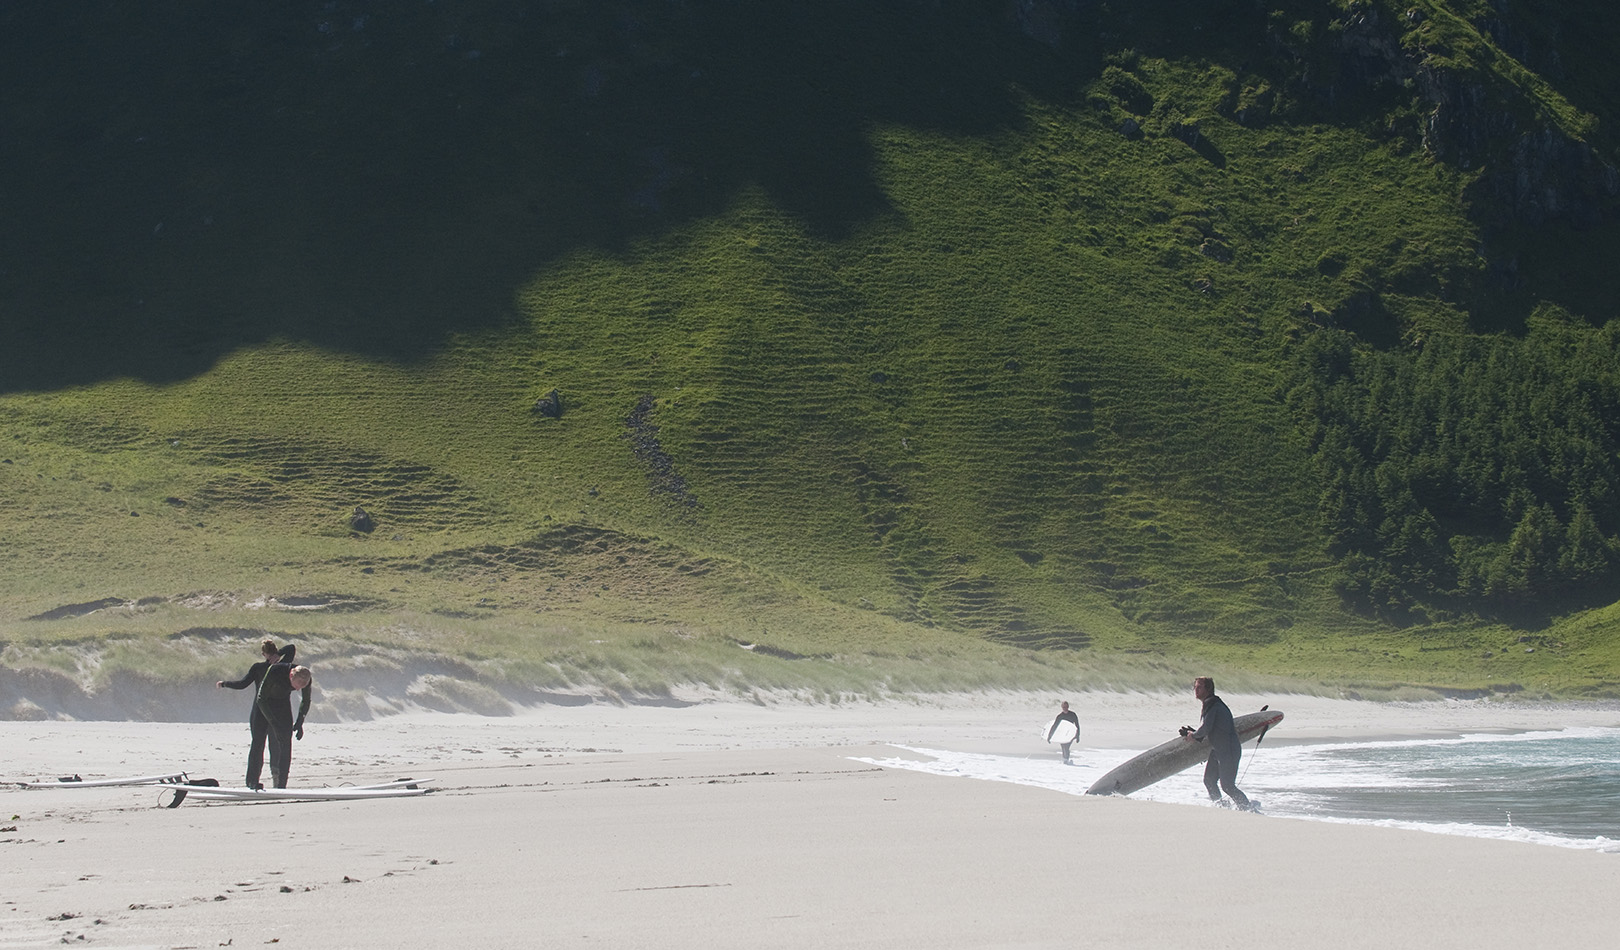 Surfers on Hoddevik beach with sand and a green mountainside.